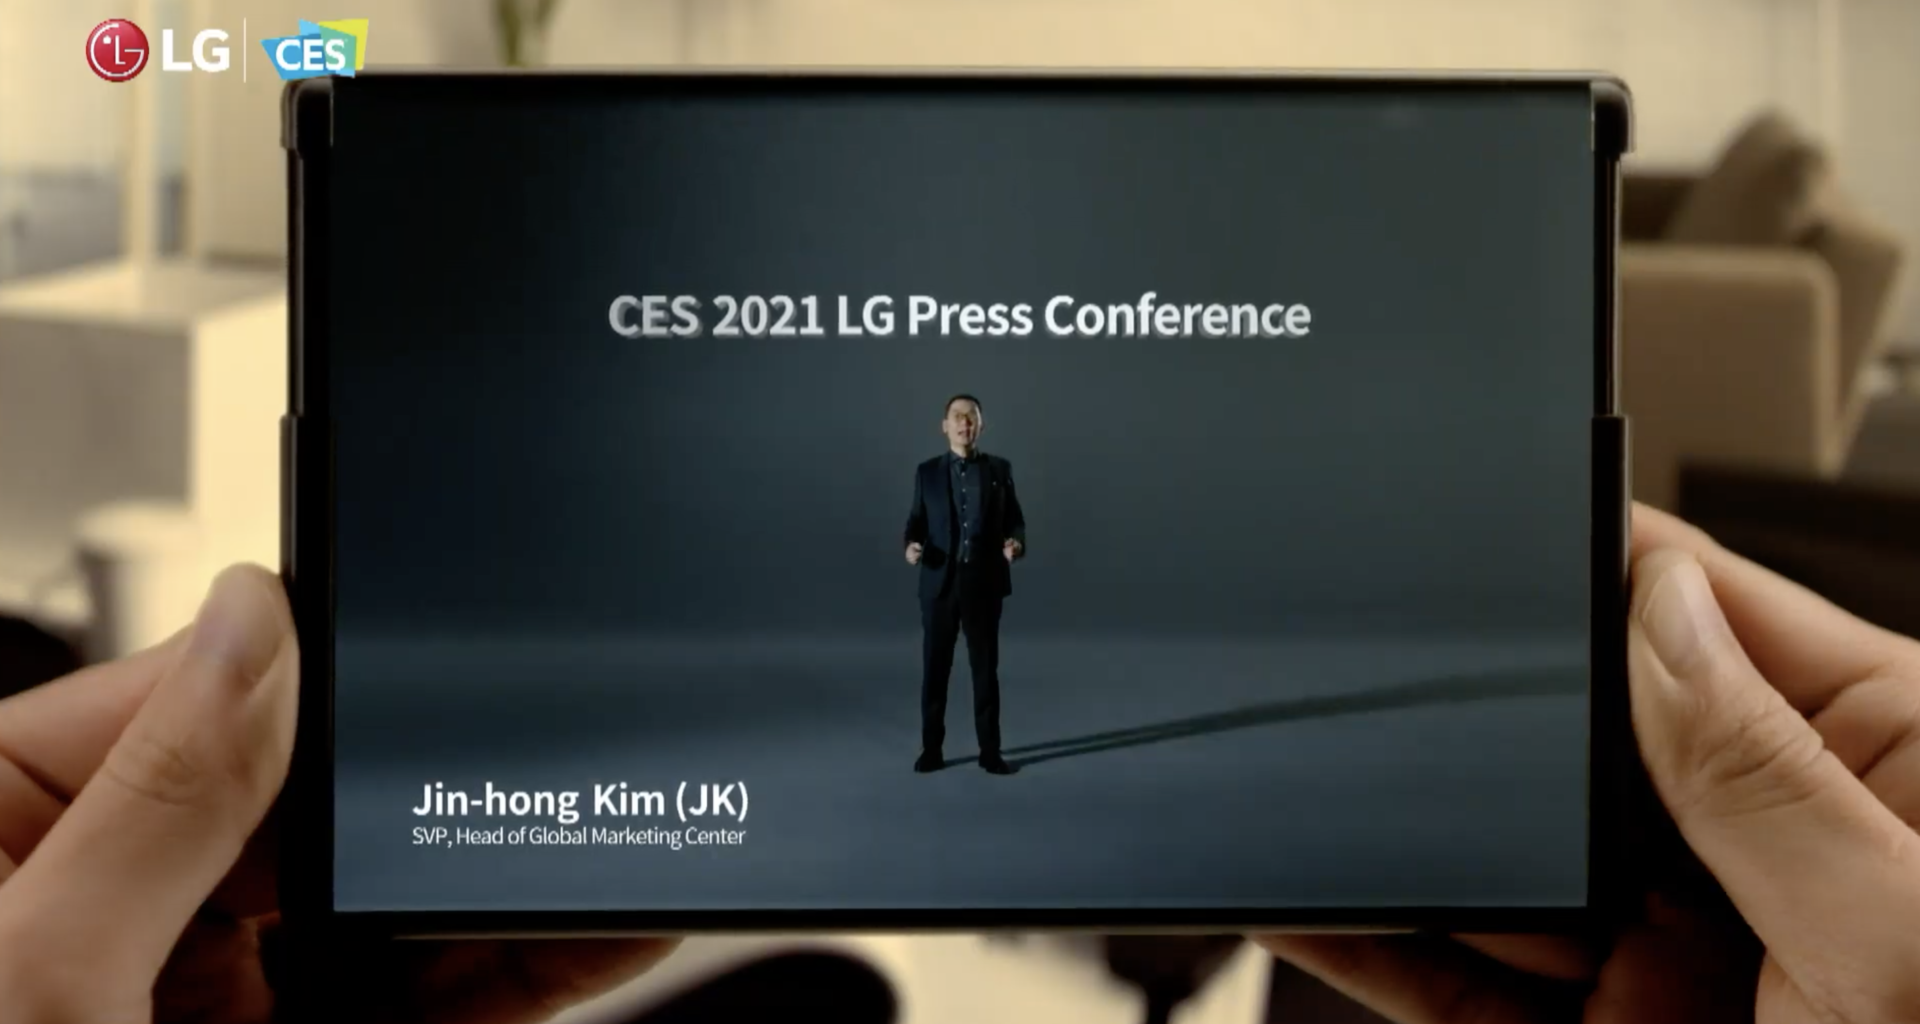 LG shows off Rollable phone in CES 2021 virtual event and confirms release within 2021